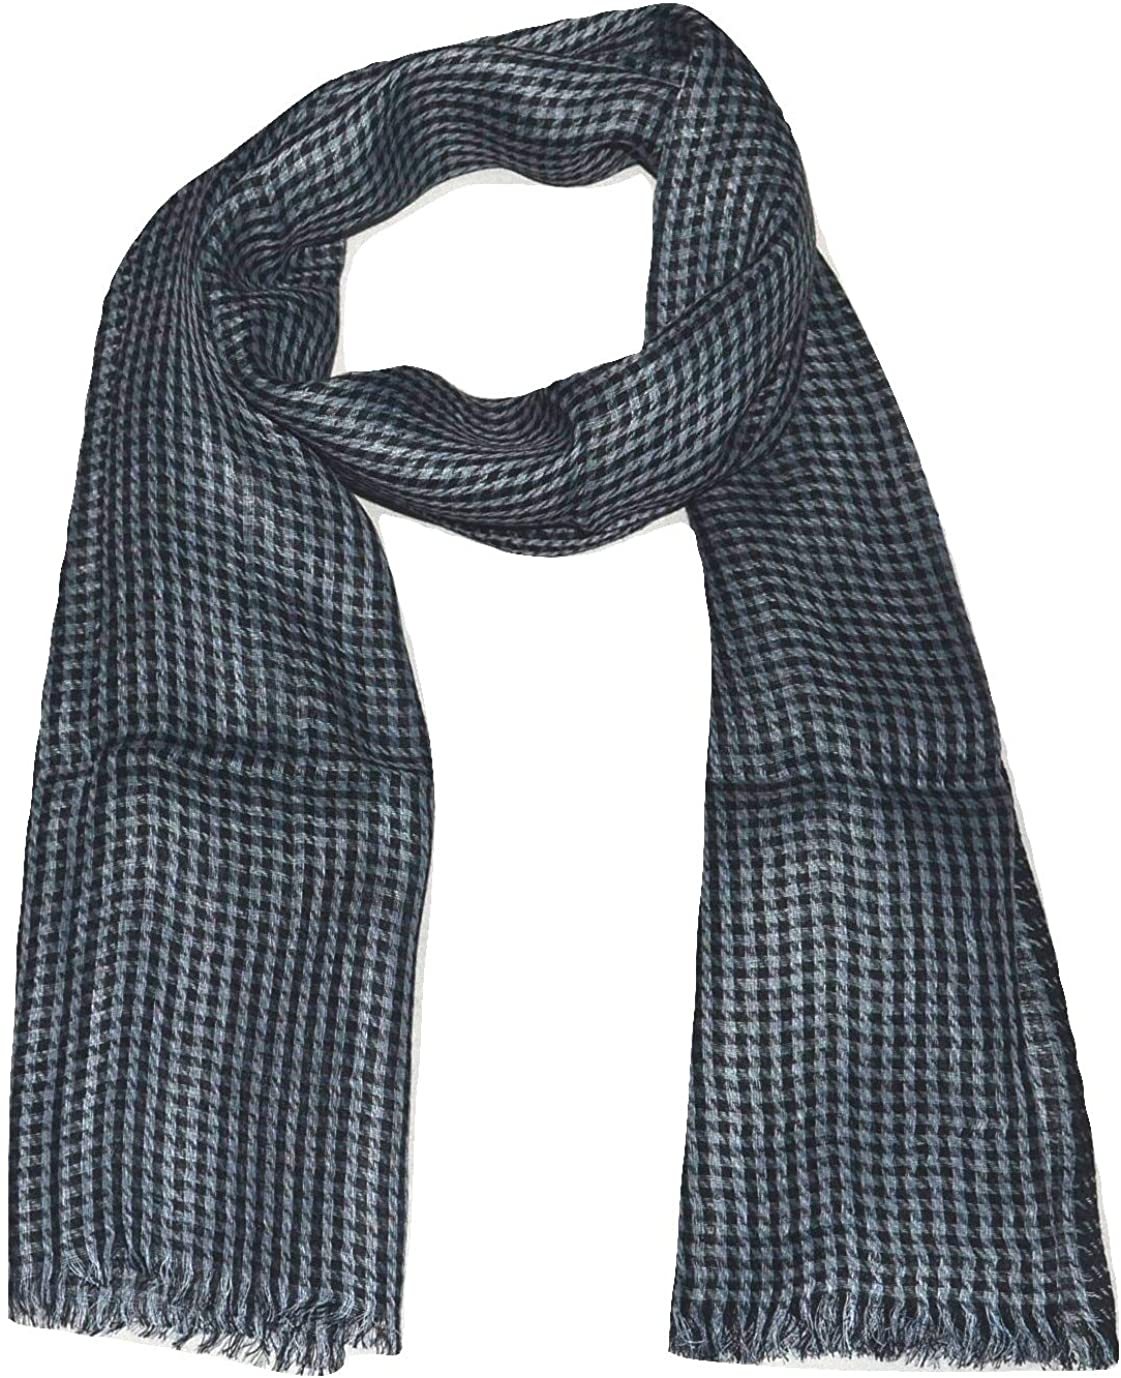 100% Pure Flax Linen Scarf, Two Tone Hounds-tooth Weave, All season Linen Scarf.